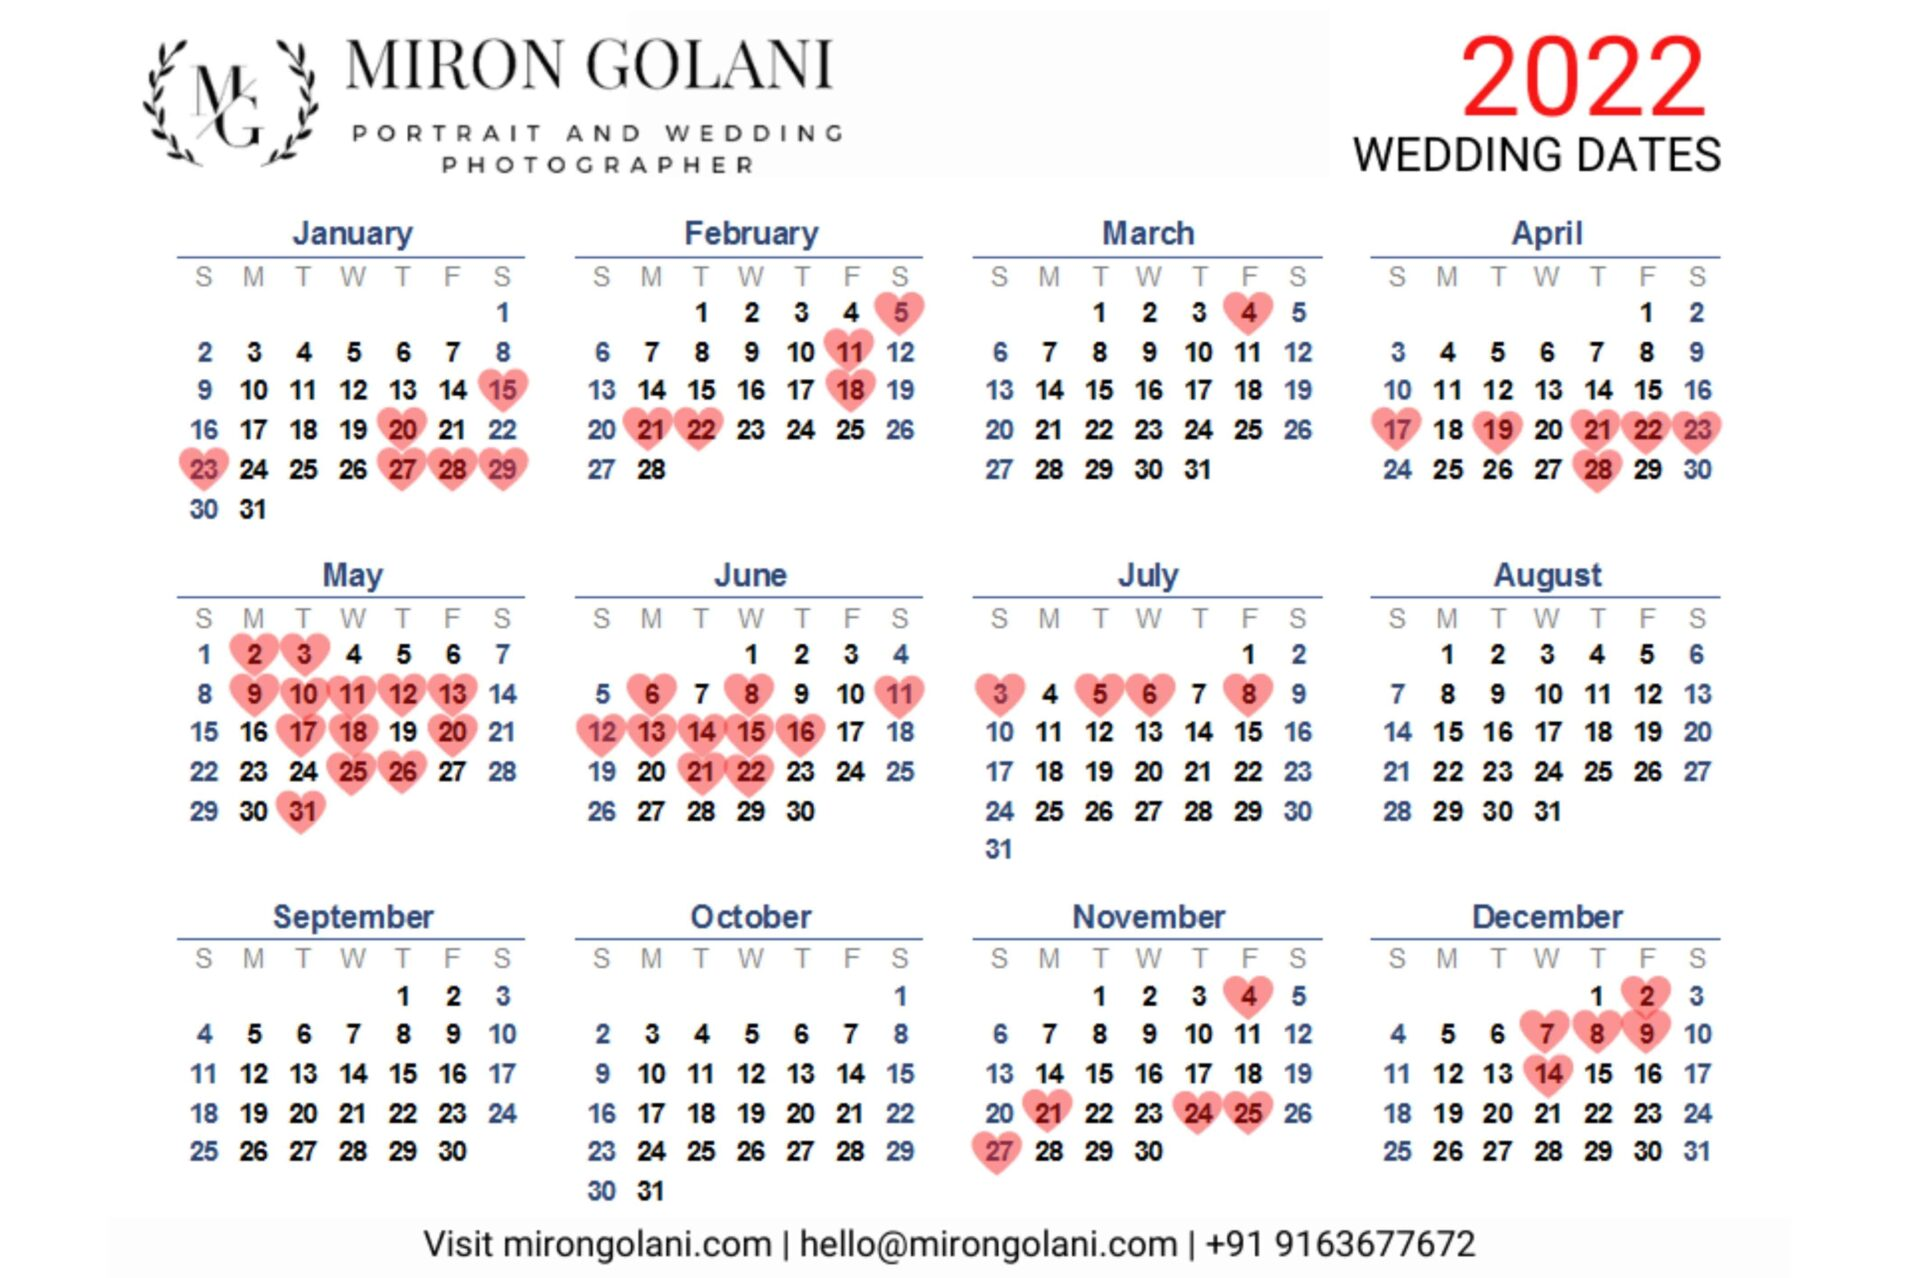 Auspicious Marriage Dates in 2022 - Wedding Dates in 2022 - Miron Golani's Photography